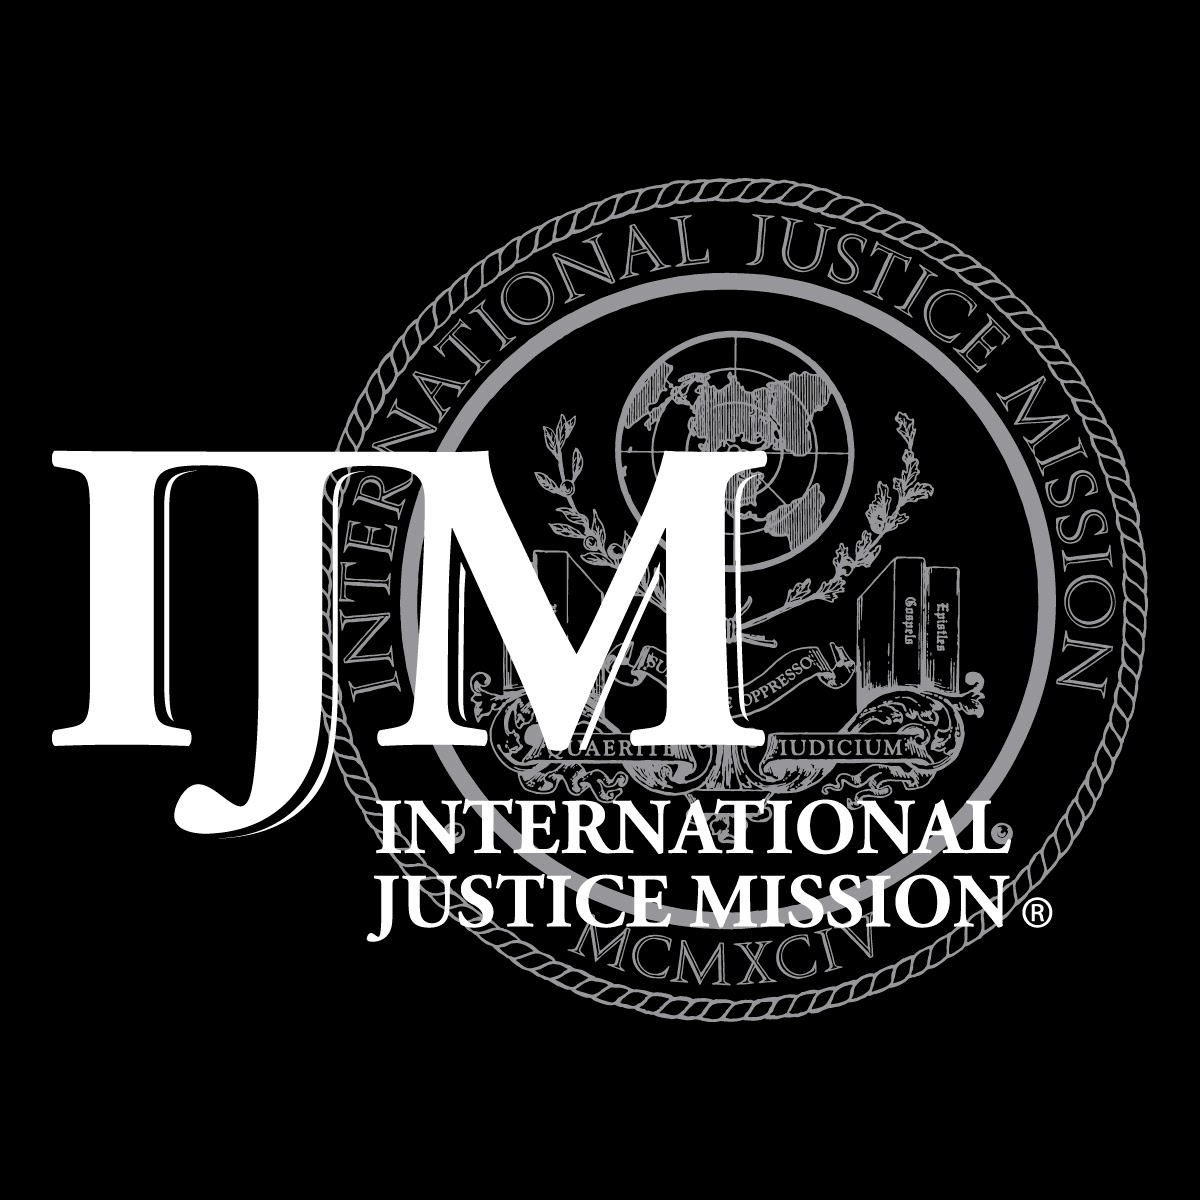 Click the image below to help International Justice Mission end slavery in our time!